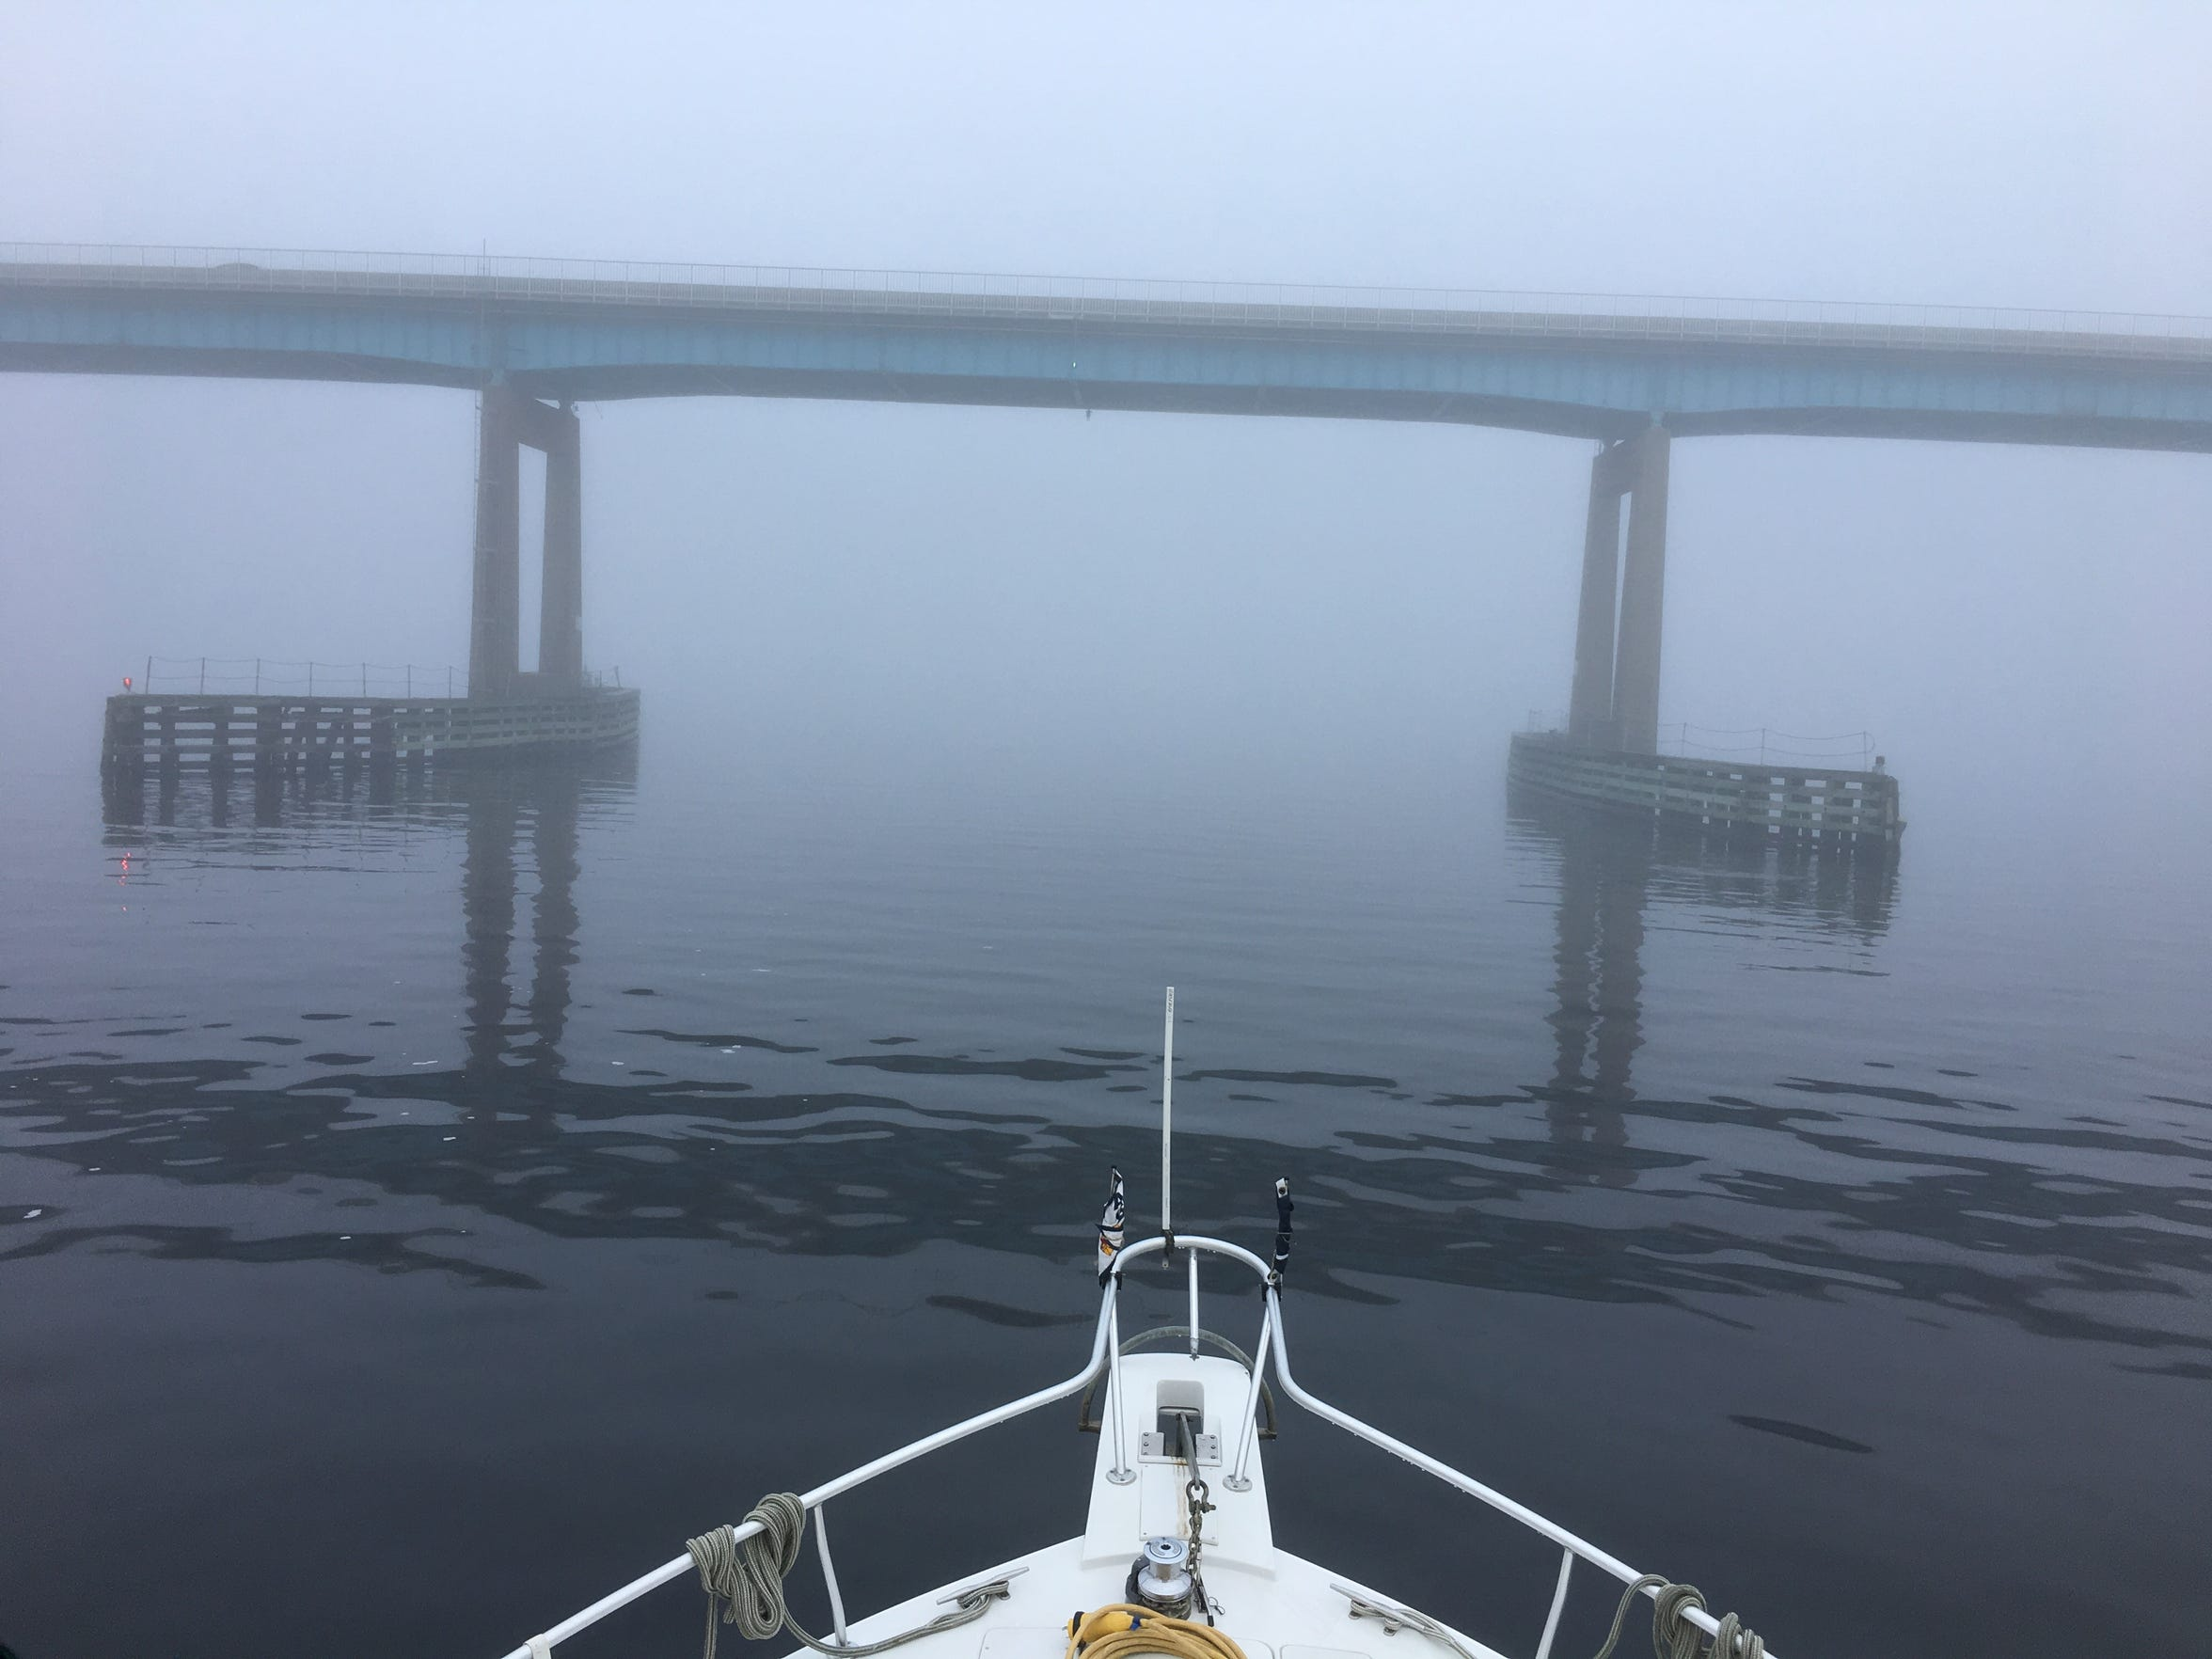 Foggy conditions in Fort Walton on the Gulf Intracoastal Waterway as the Bakers of Milford travel America's Great Loop.